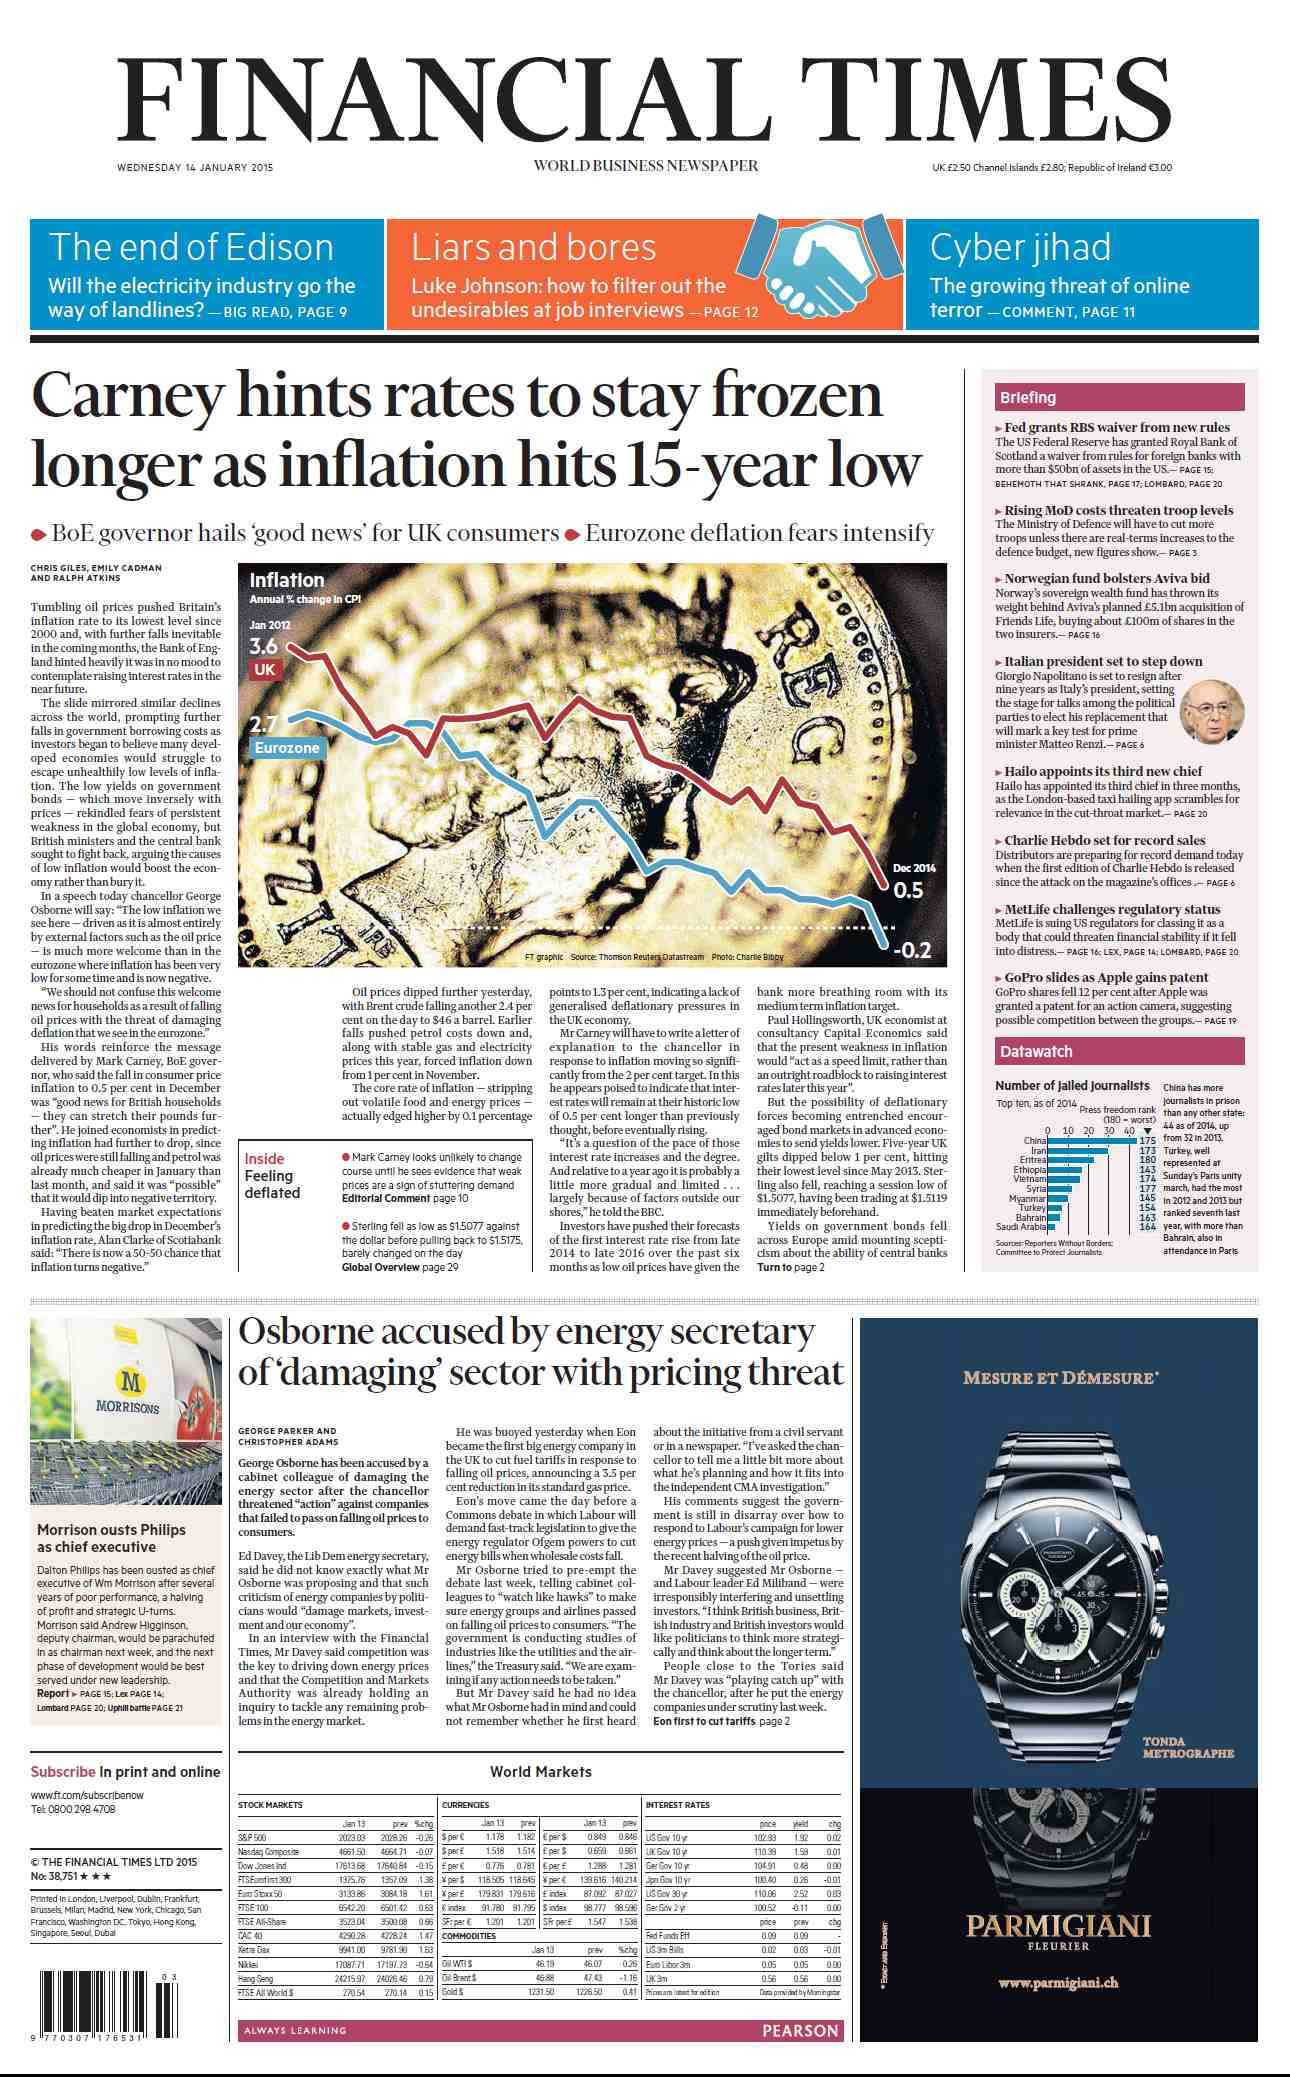 Financial Times UK January 14, 2015 free download